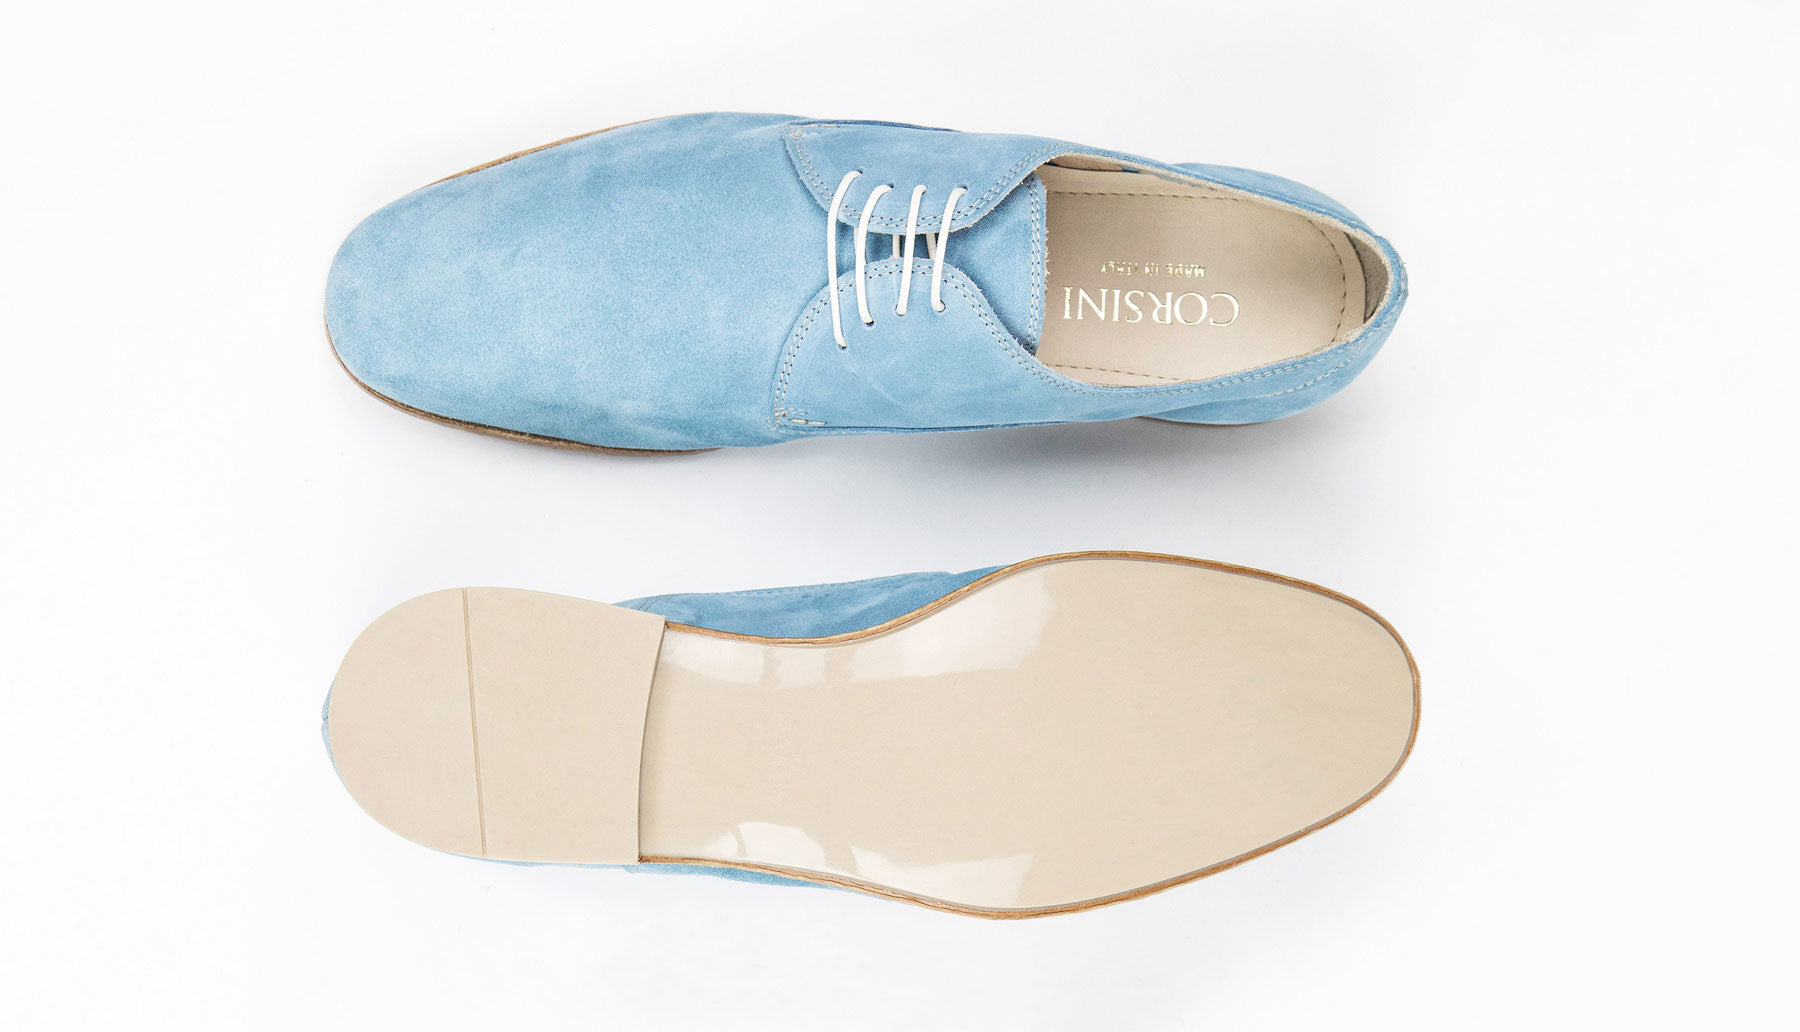 corsini shoes, blue shoes, blue corsini shoe